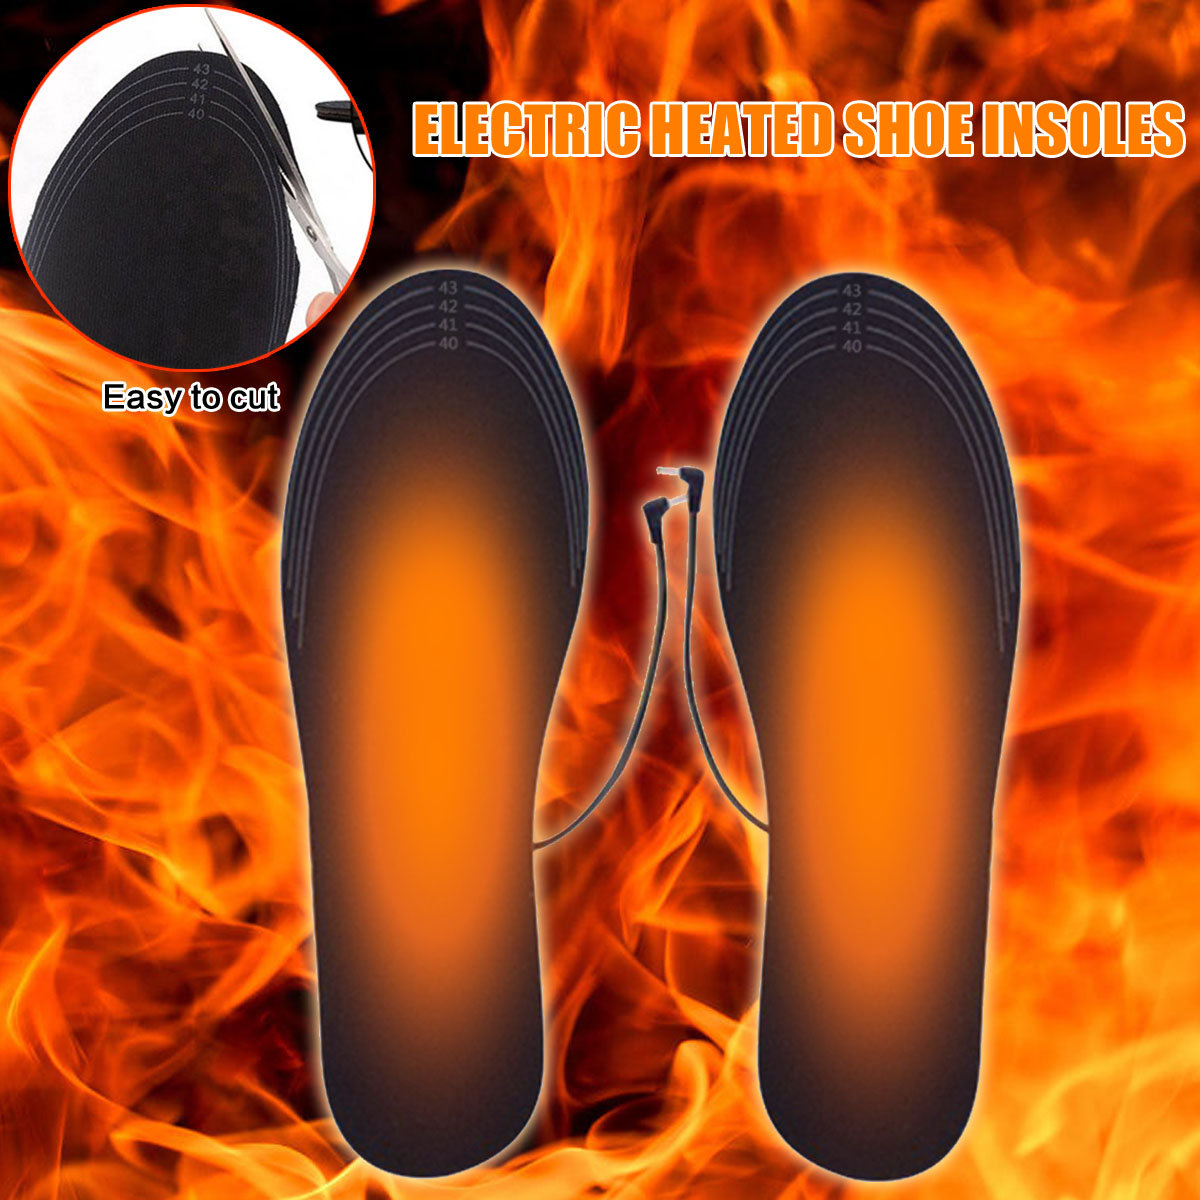 Black Electric Heated Shoe Insole Warm Foot Heater Breathable Deodorant Washable Tailorable Size Pad